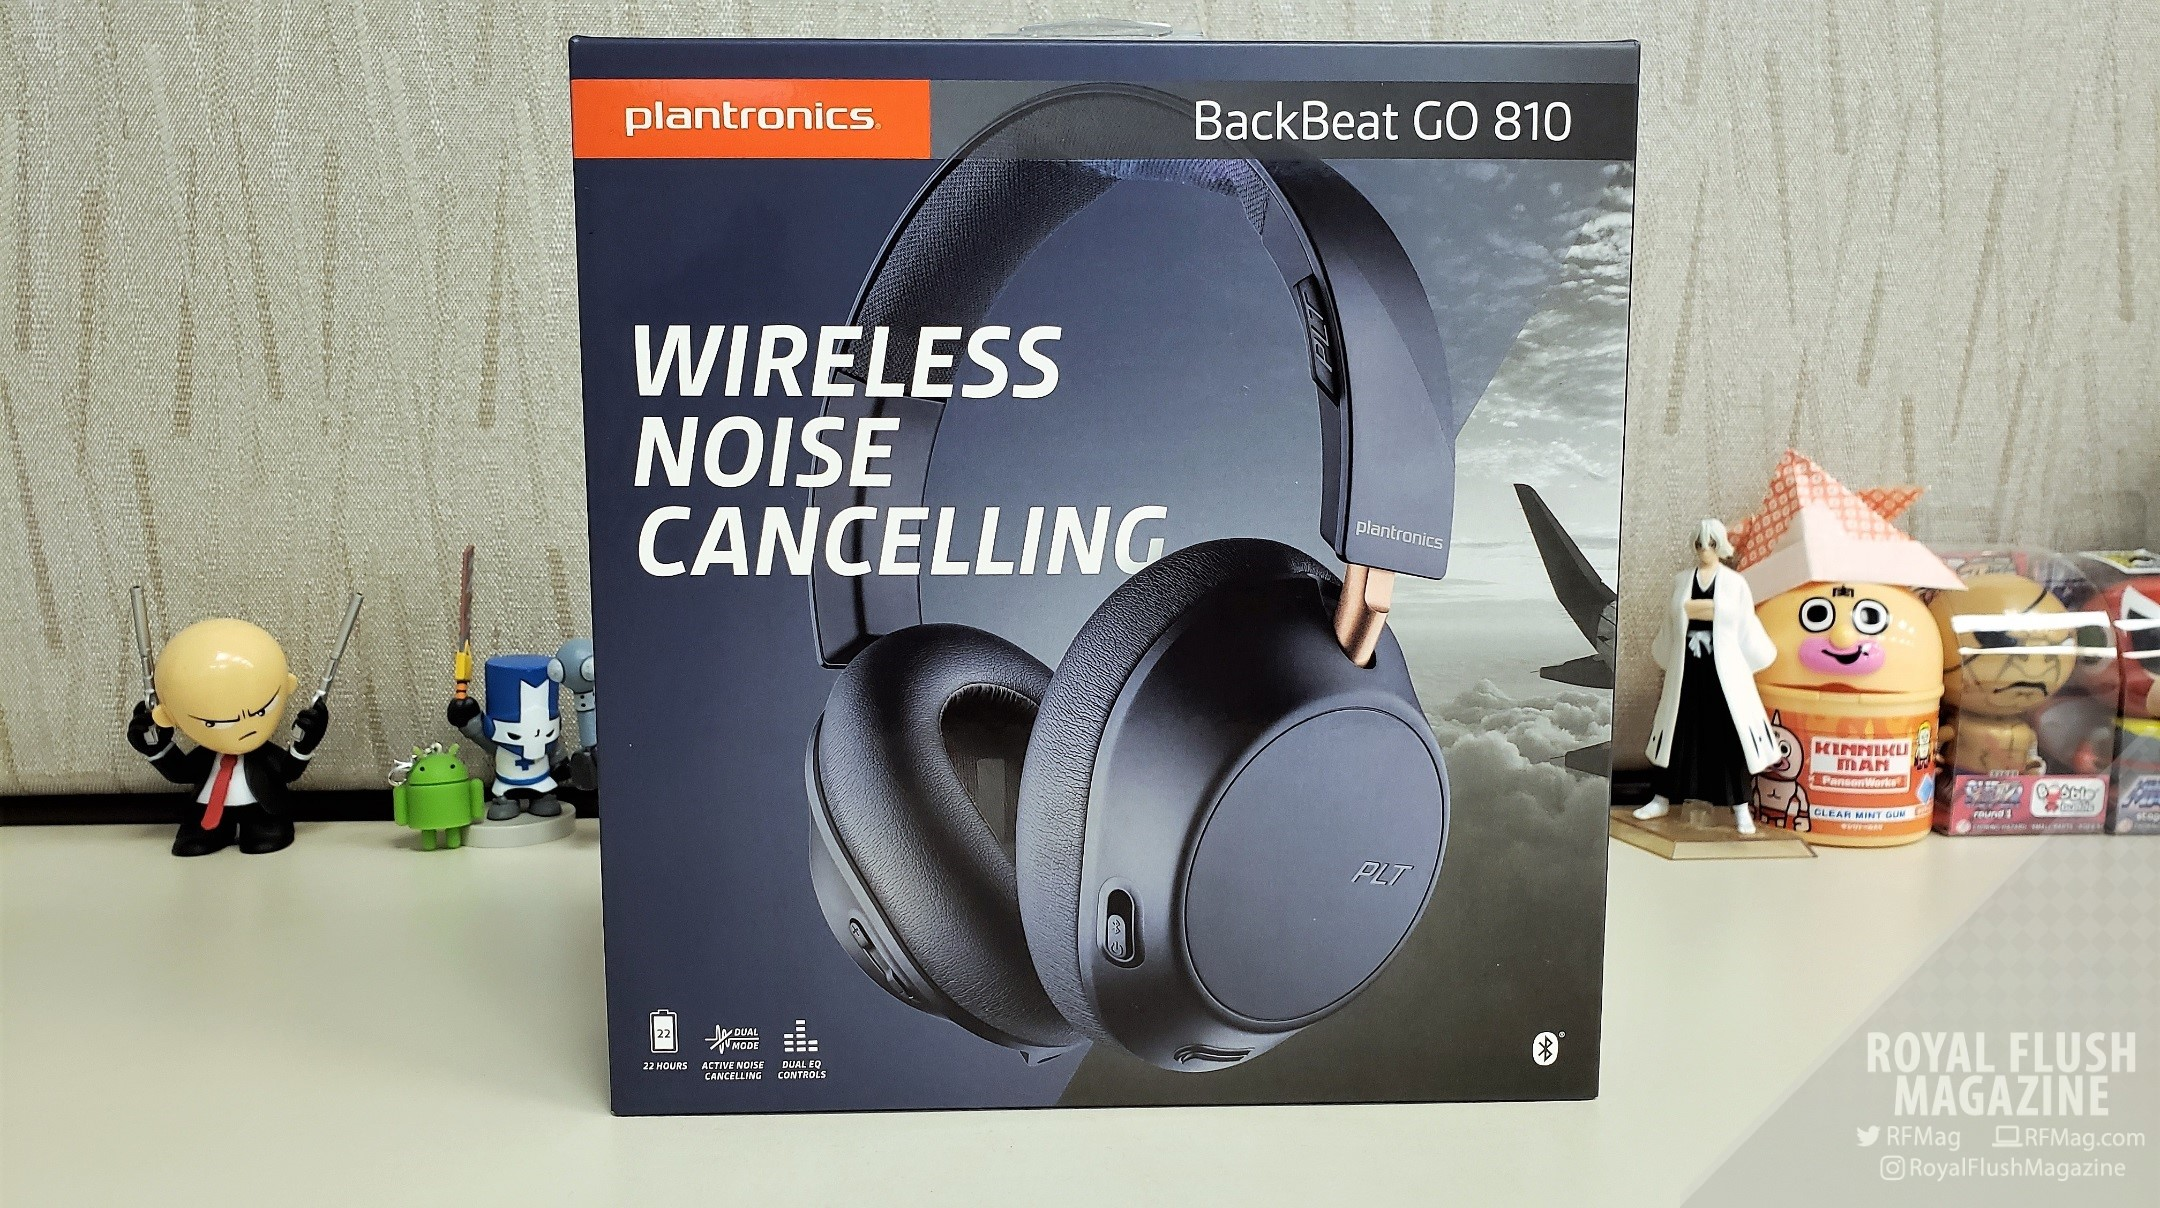 9234062d7b9 As far casual listening headsets go, BackBeat GO 810 is so far the best  bang-for-your-buck product that I've tried this year. Definitely take a  look at the ...